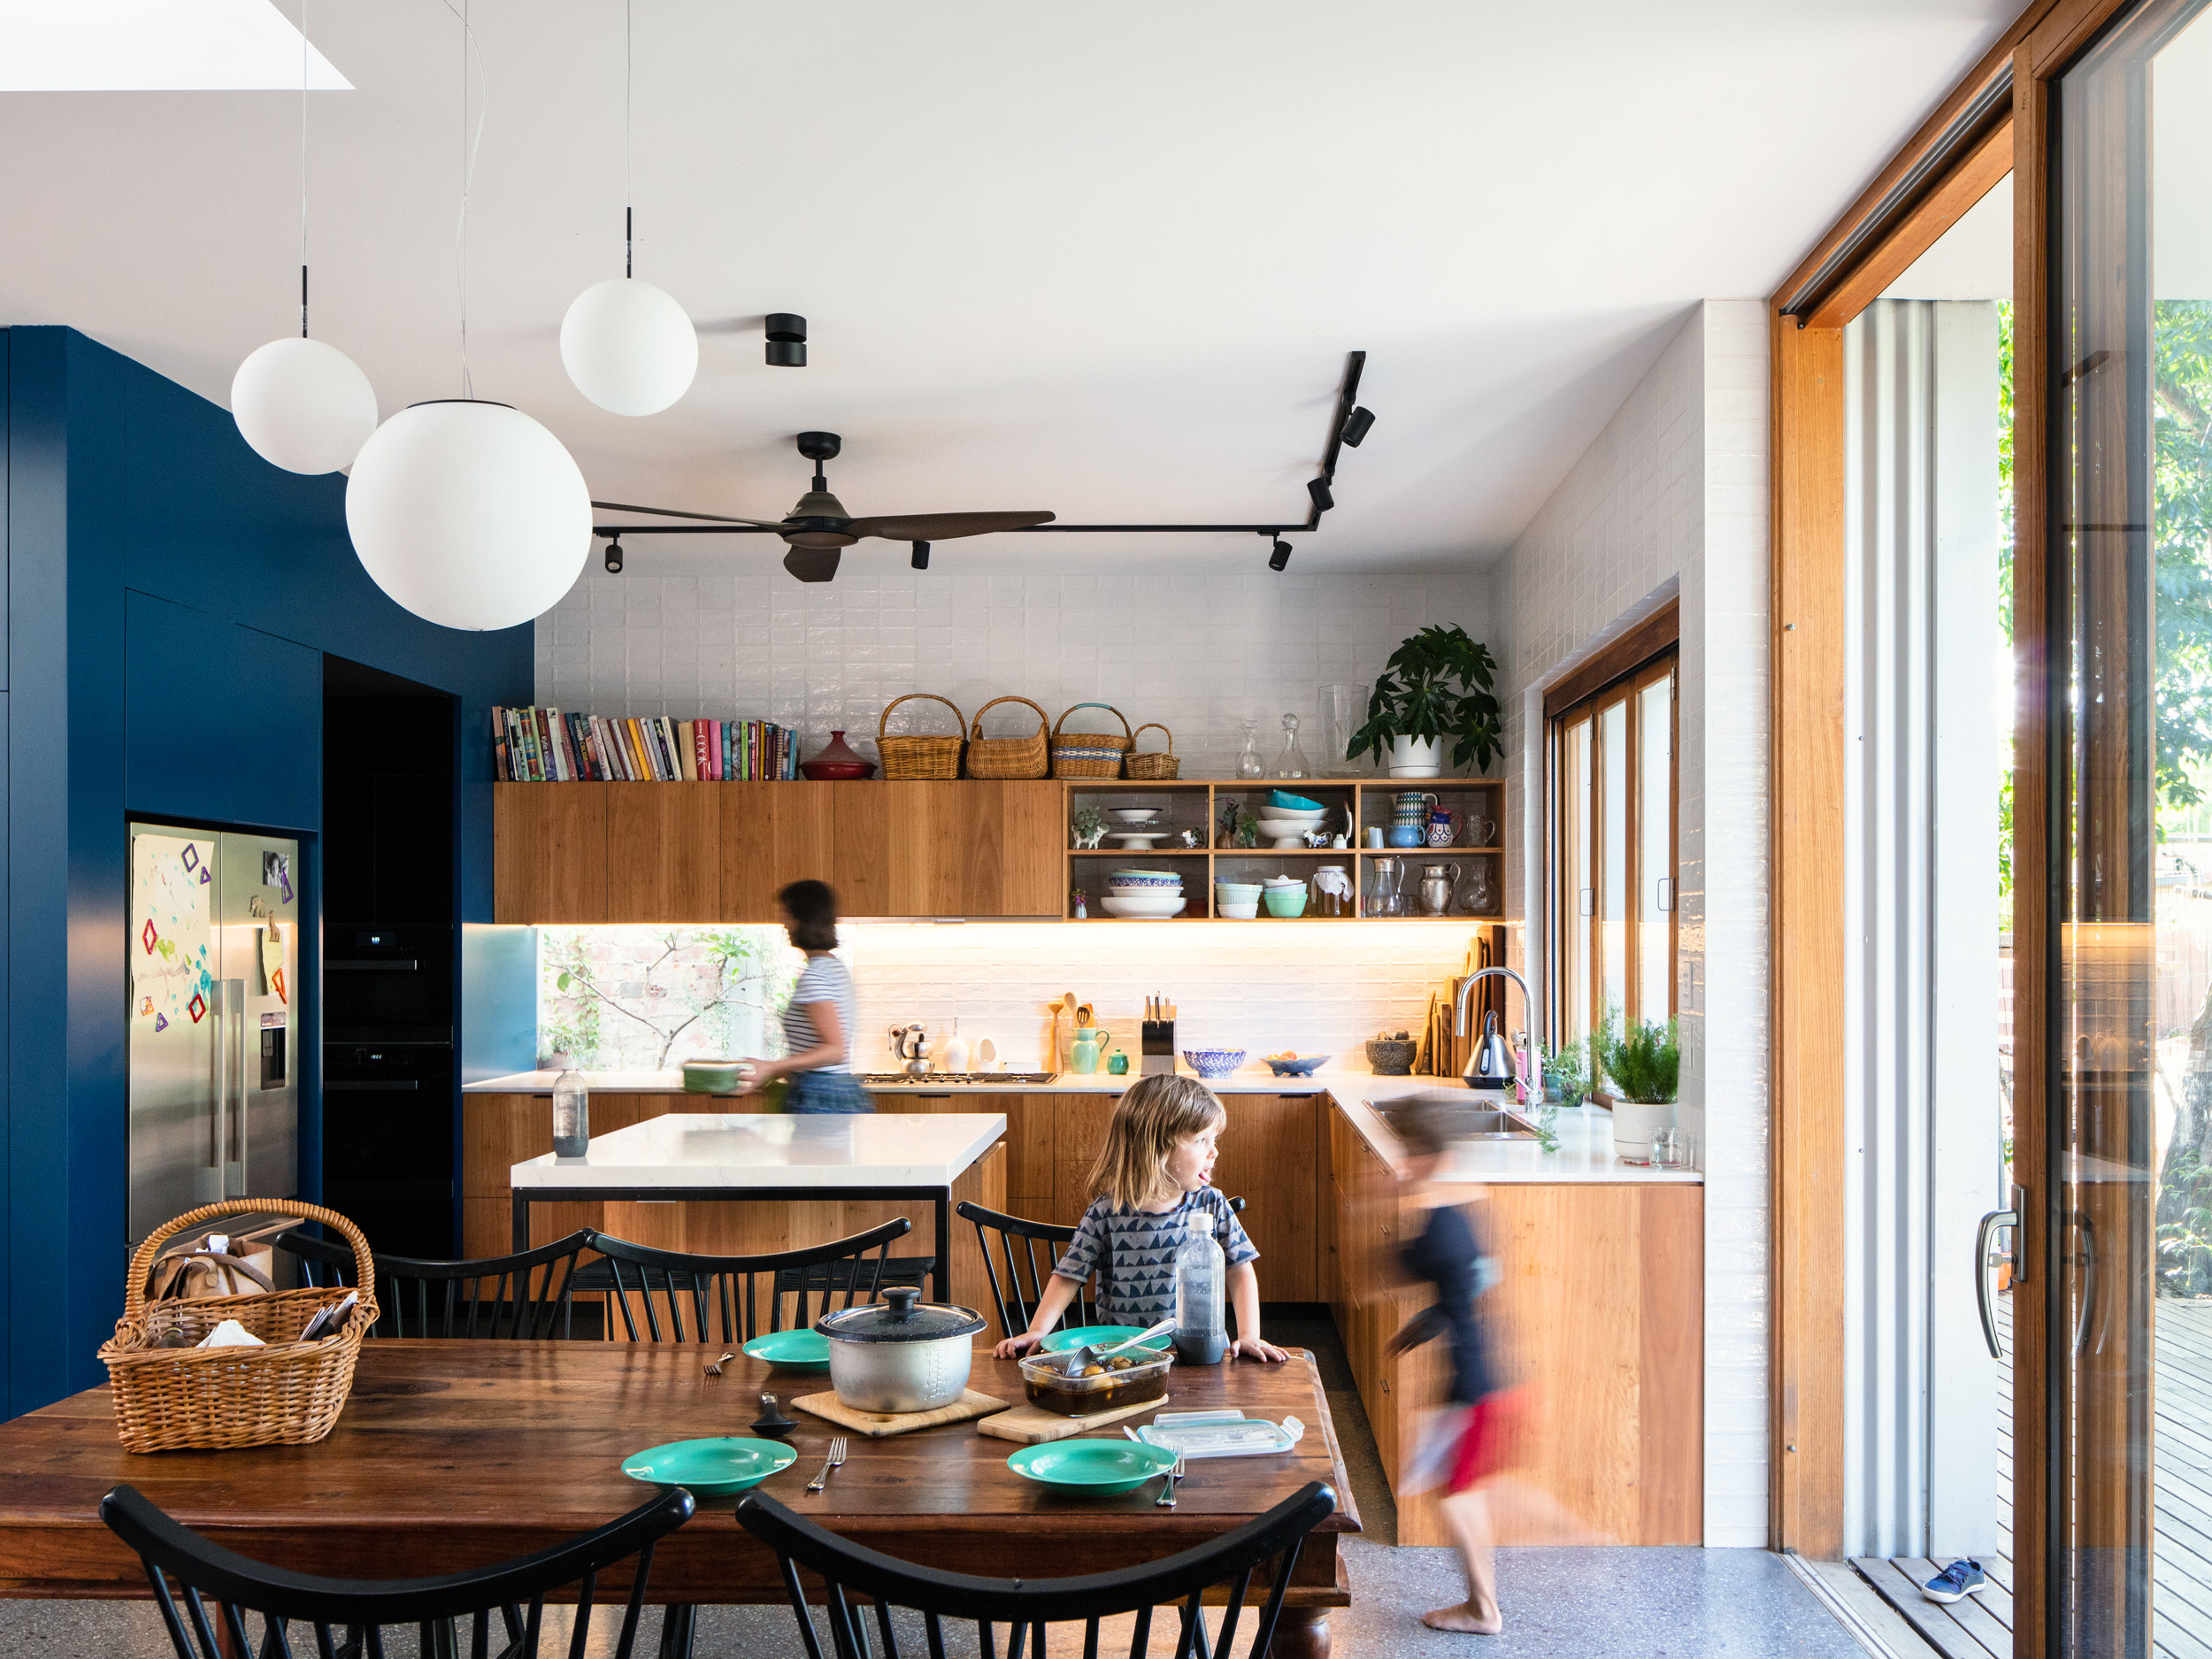 Large, open kitchen with great connection to outside. Image by Rory Gardiner.